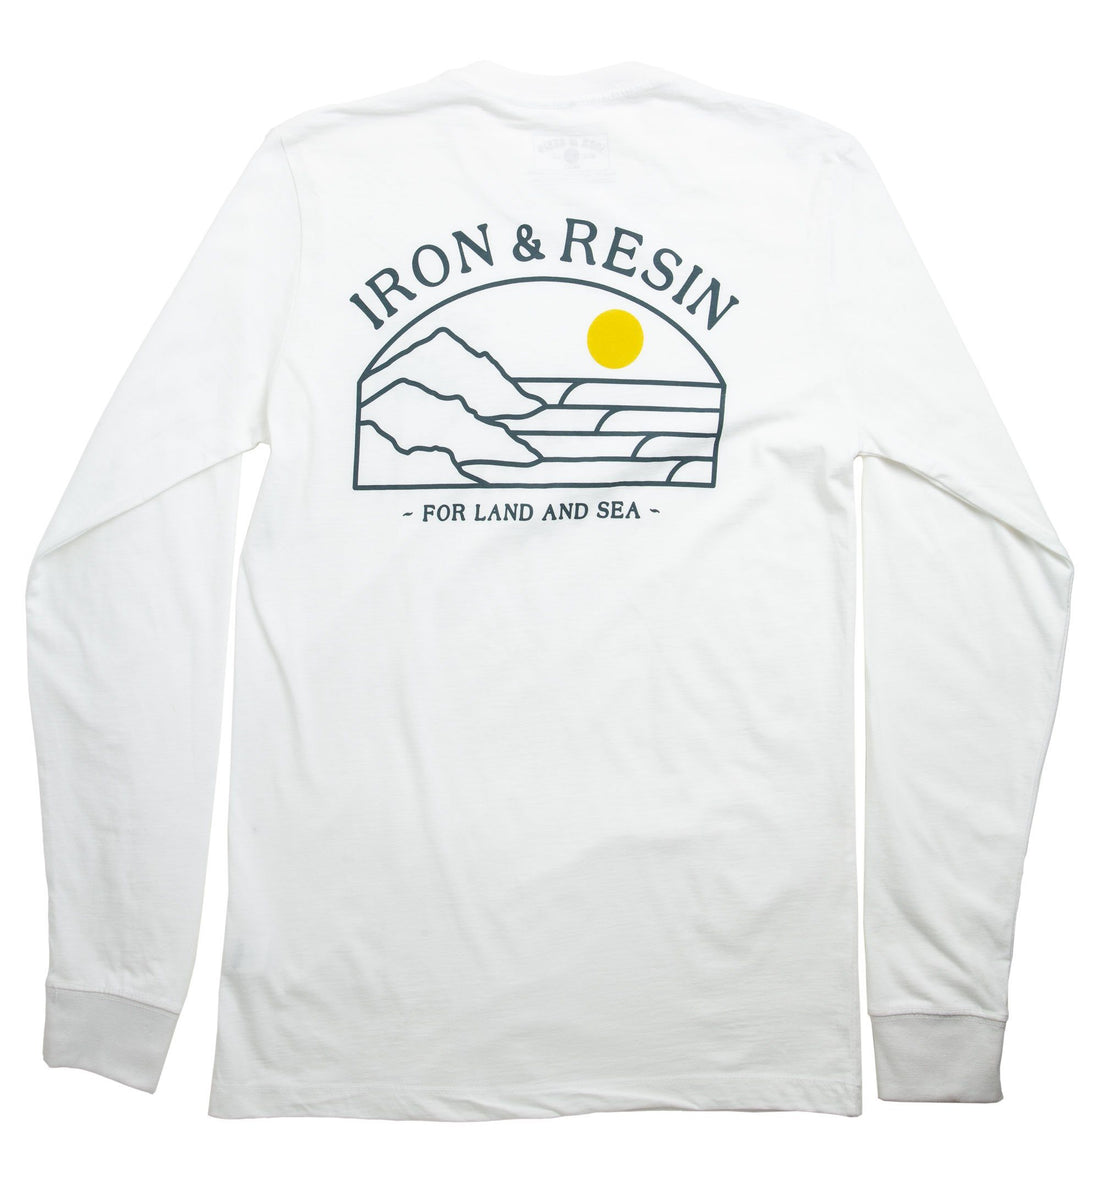 Land And Sea L/S Tee - Tops - Iron and Resin